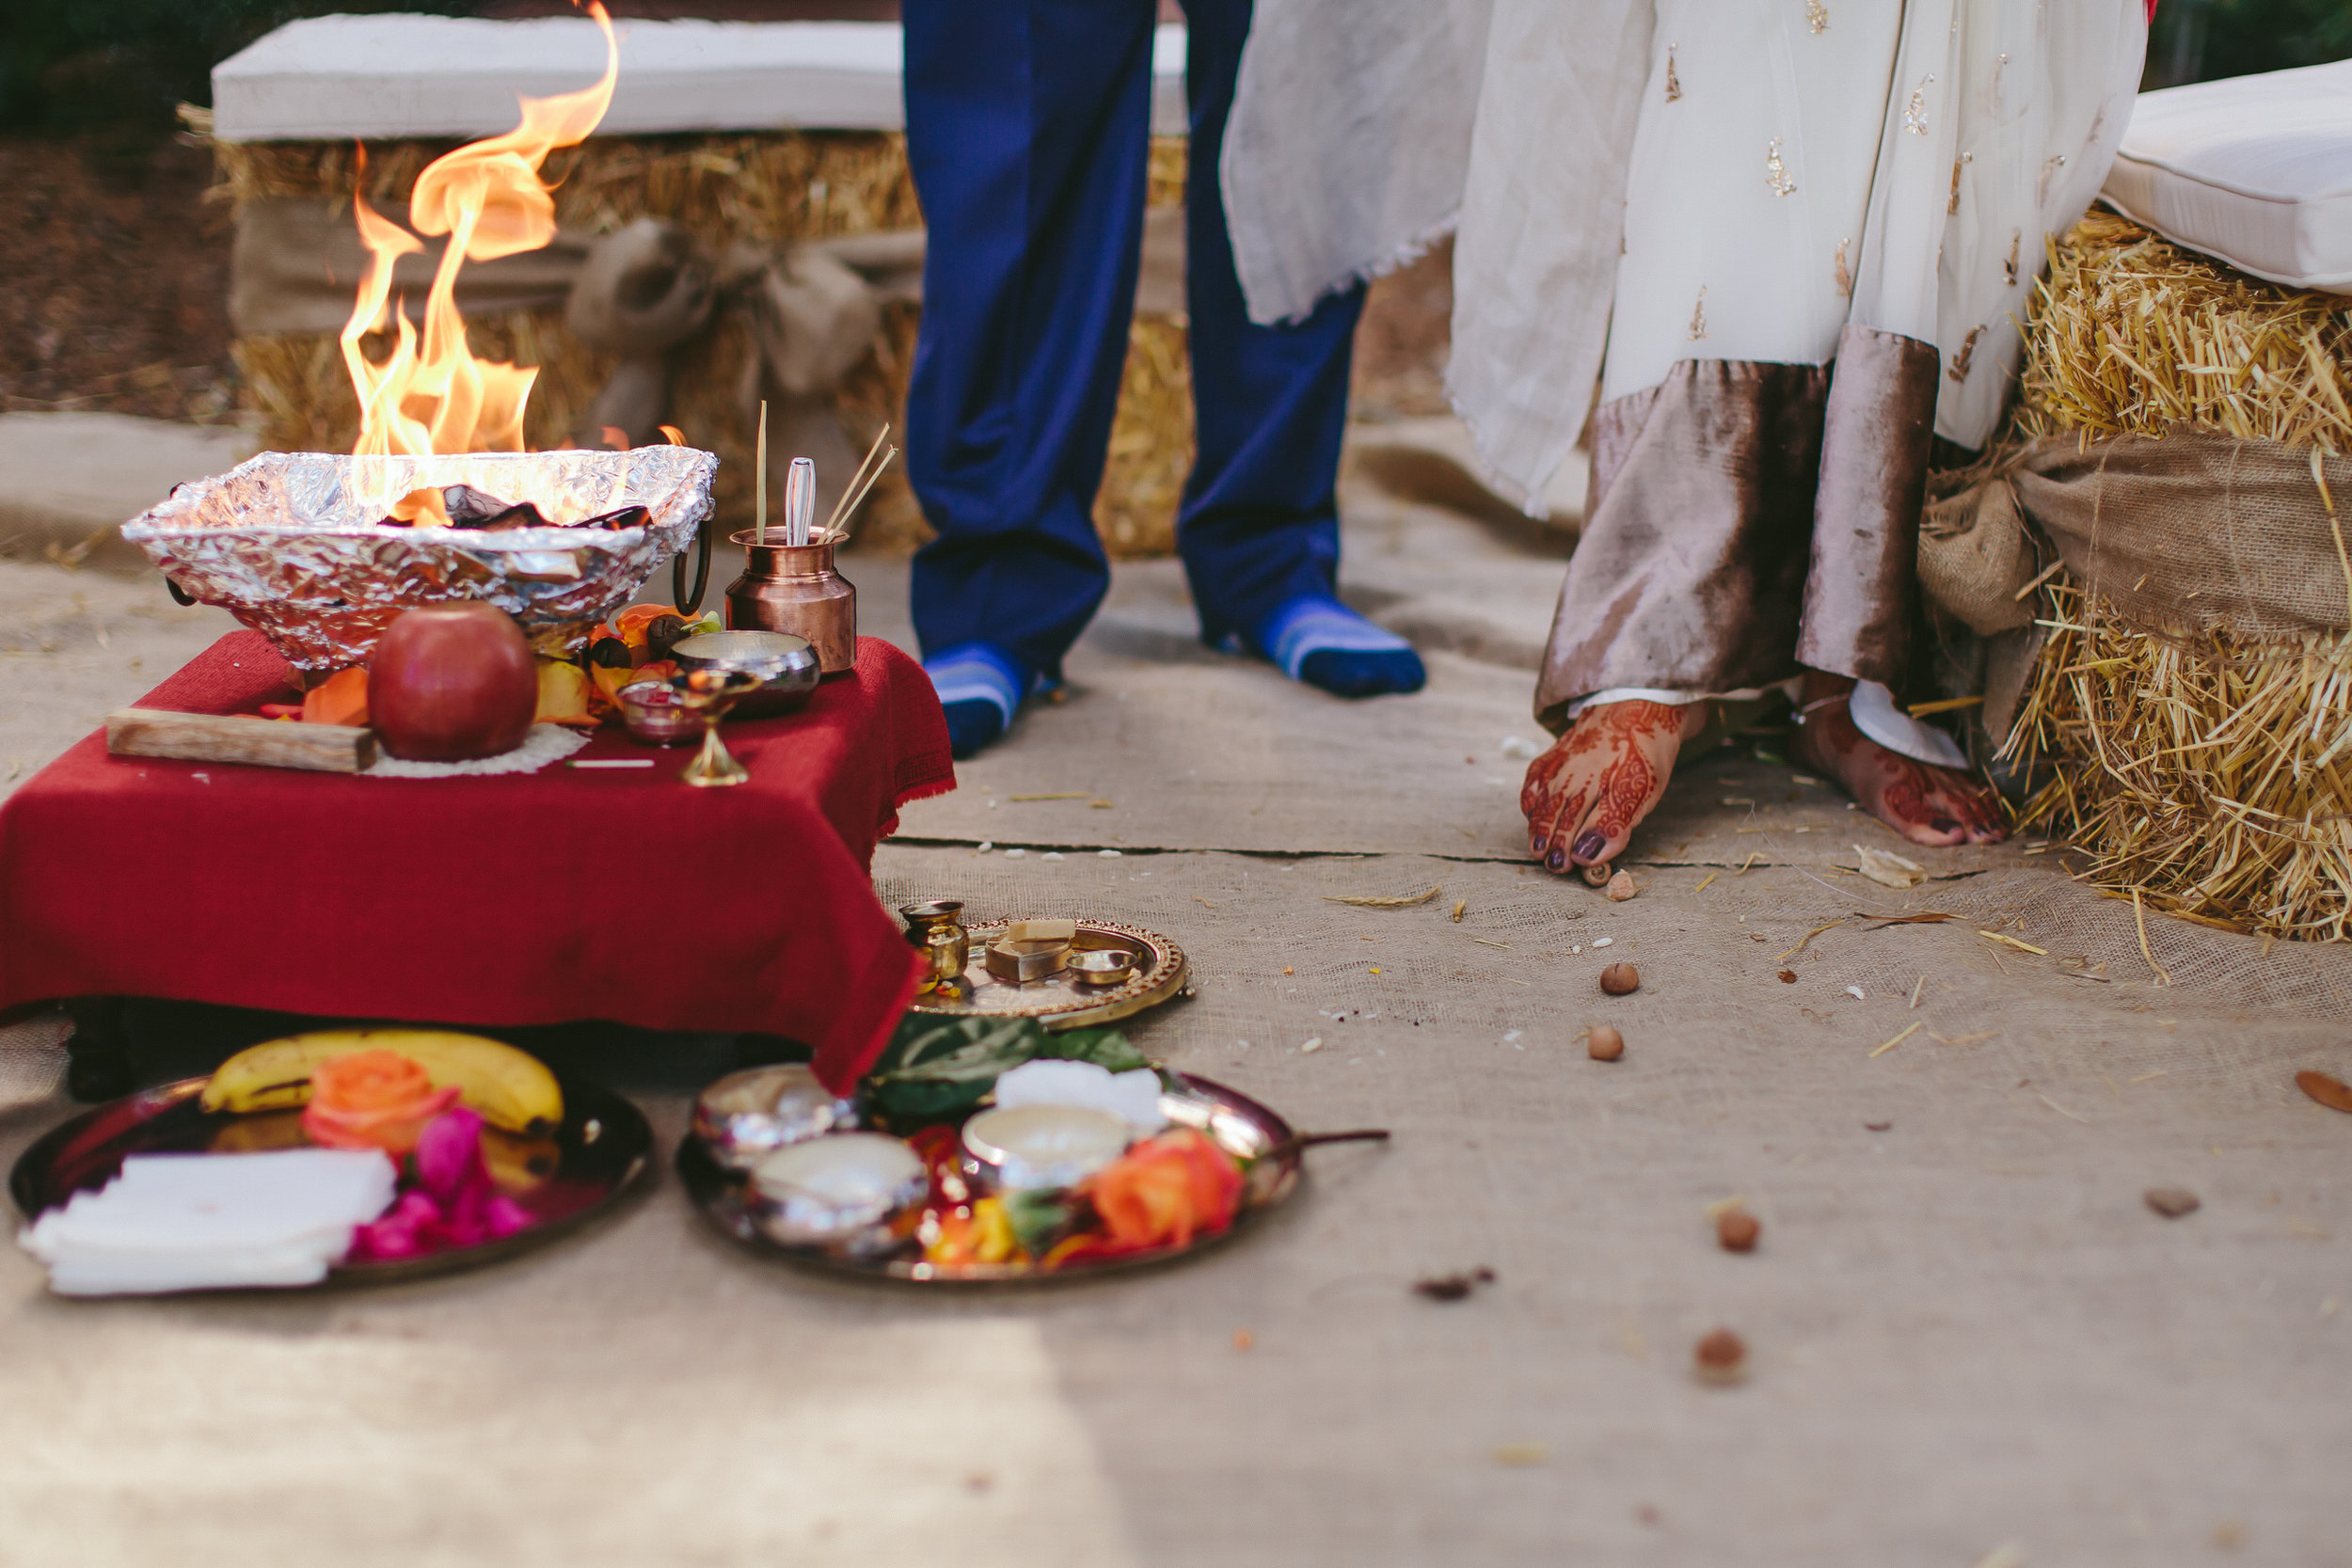 indian-wedding-traditions-fire-flames-tiny-house-photo-details-ceremony.jpg